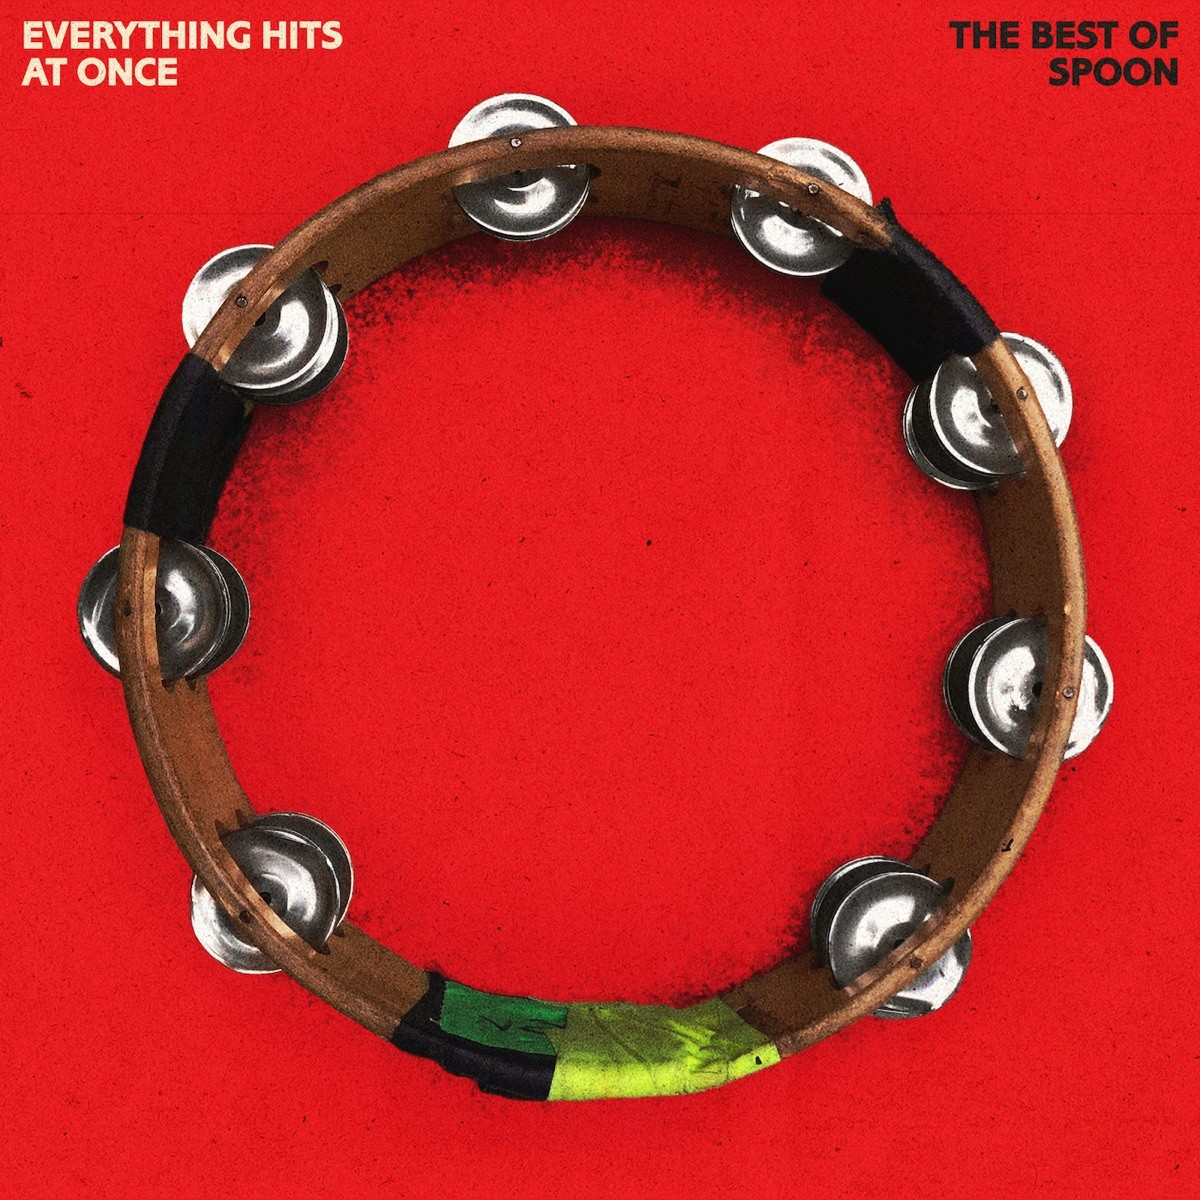 Spoon - Everything Hits At Once: The Best Of Spoon VINYL - OLE1471LP